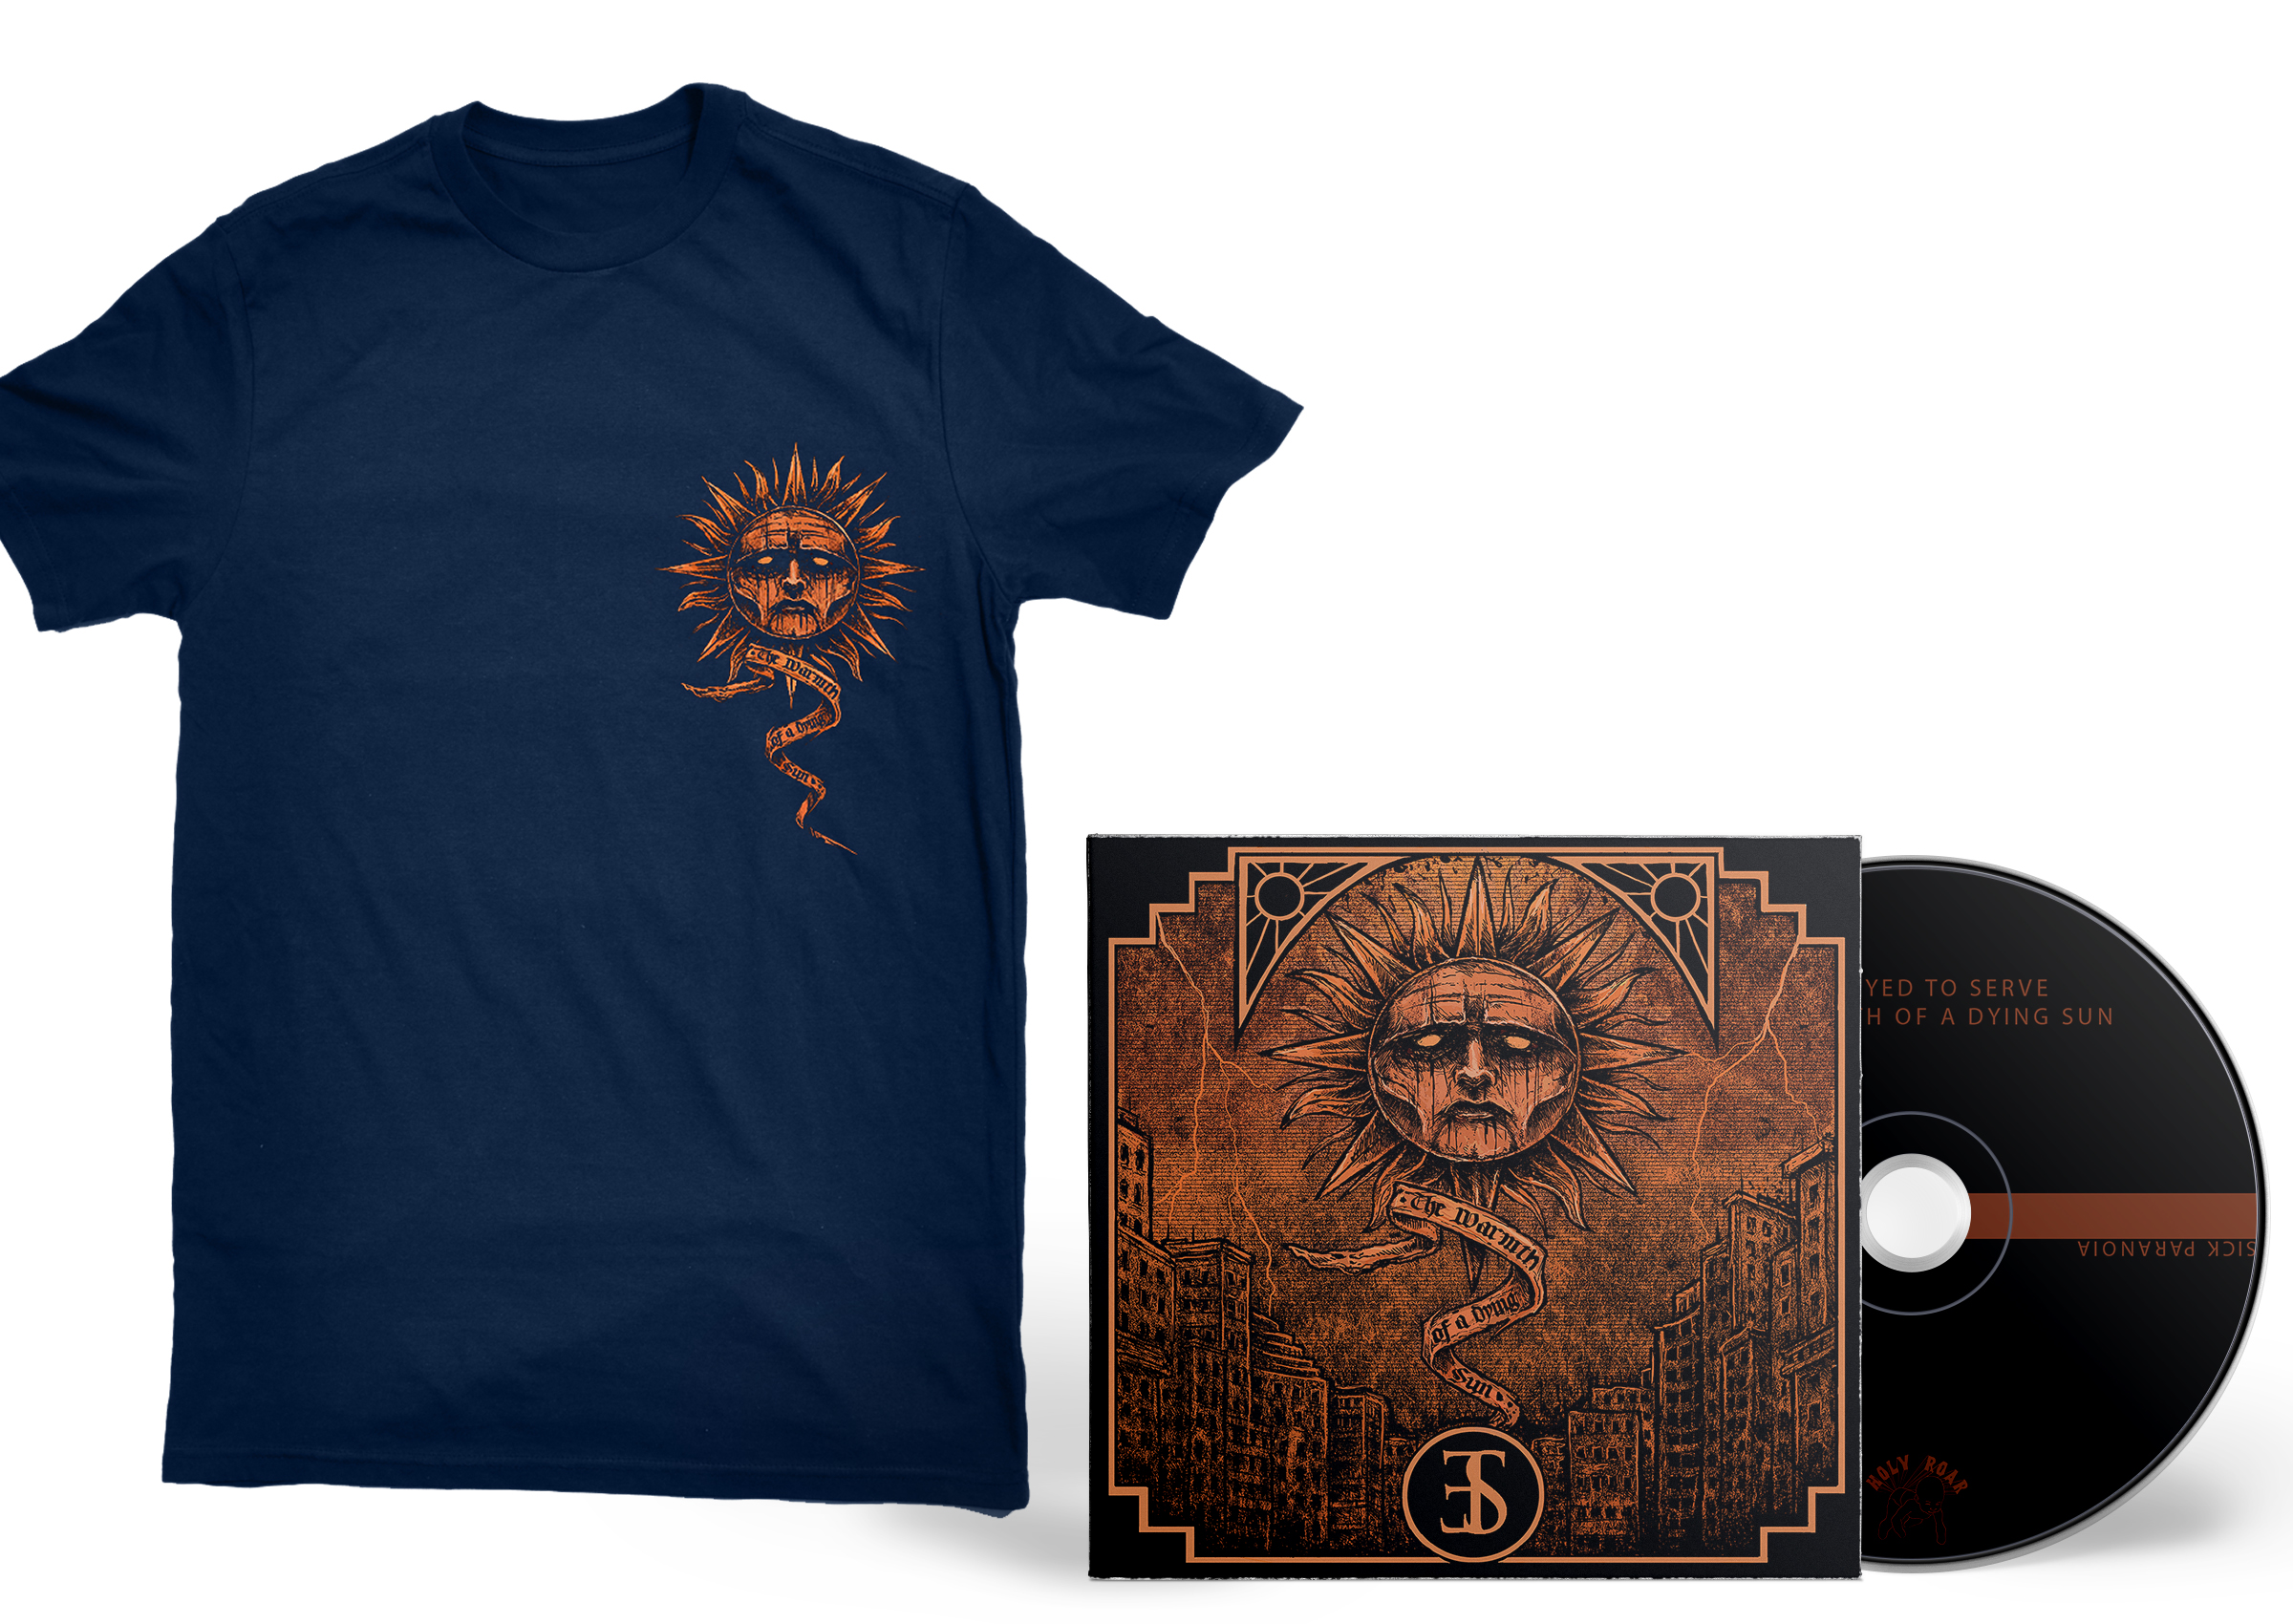 Employed To Serve - The Warmth Of A Dying Sun navy shirt + CD PREORDER